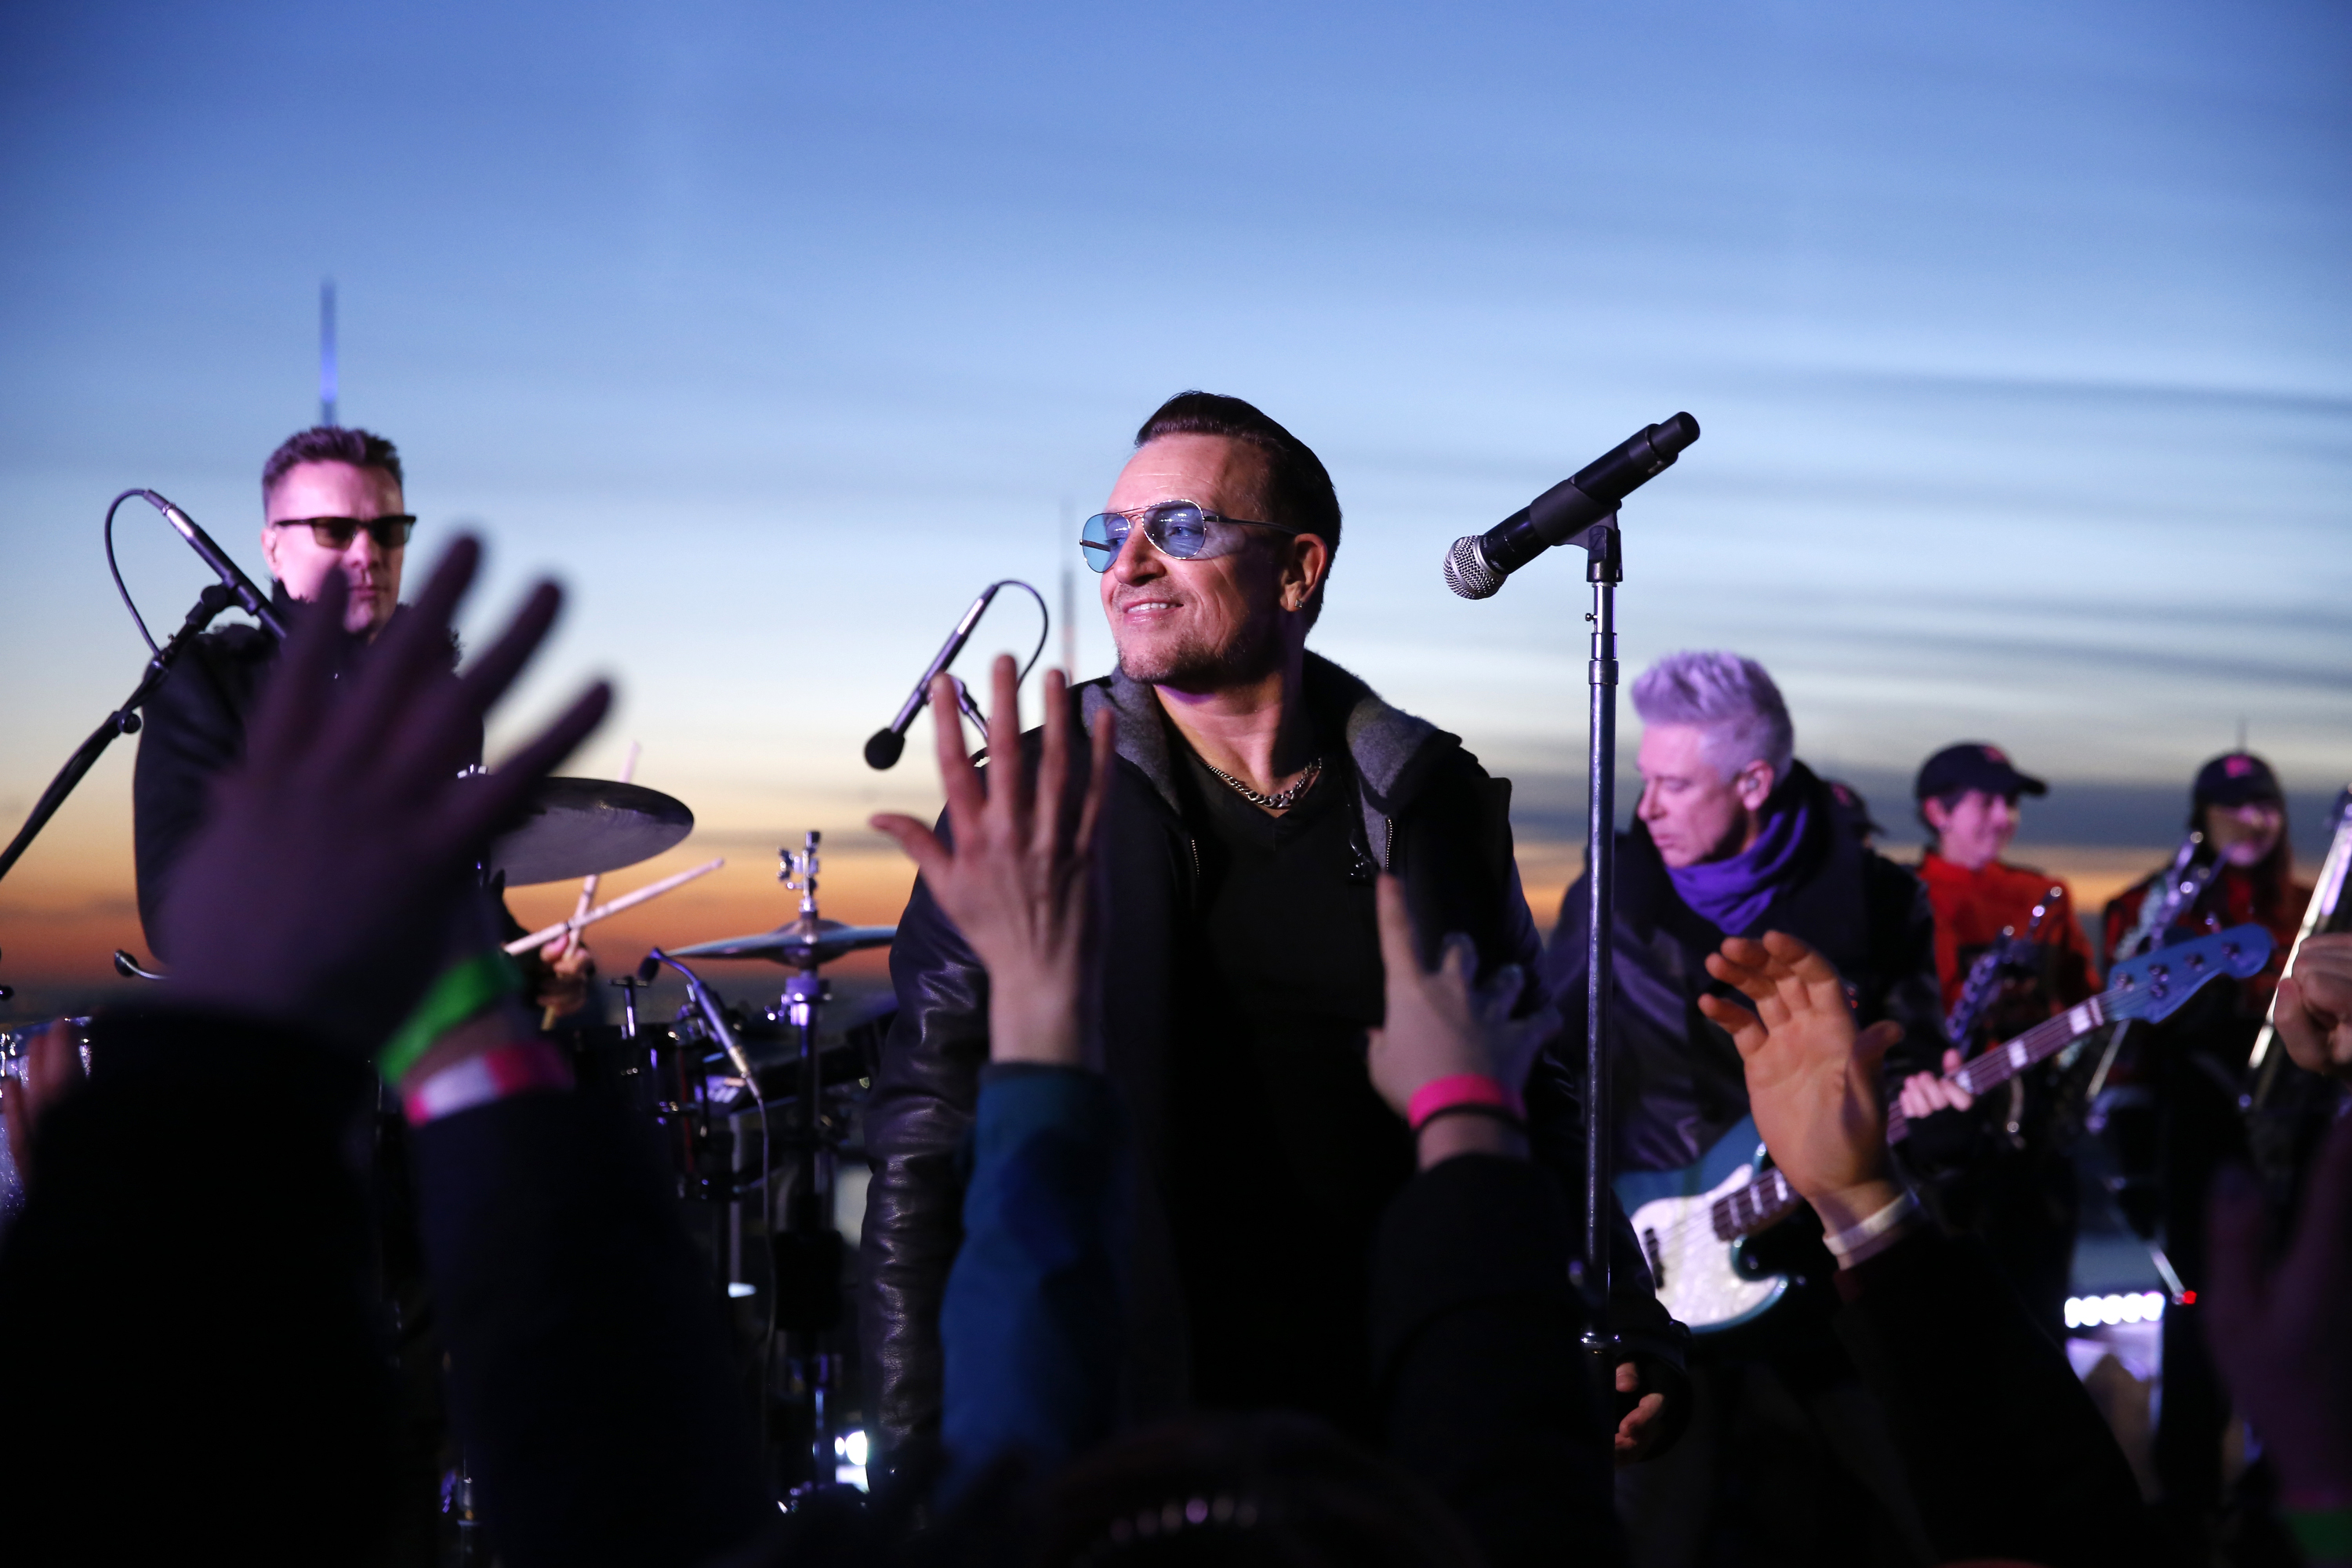 U2 Now Eligible for Grammys After Pressing Limited-Edition Vinyl